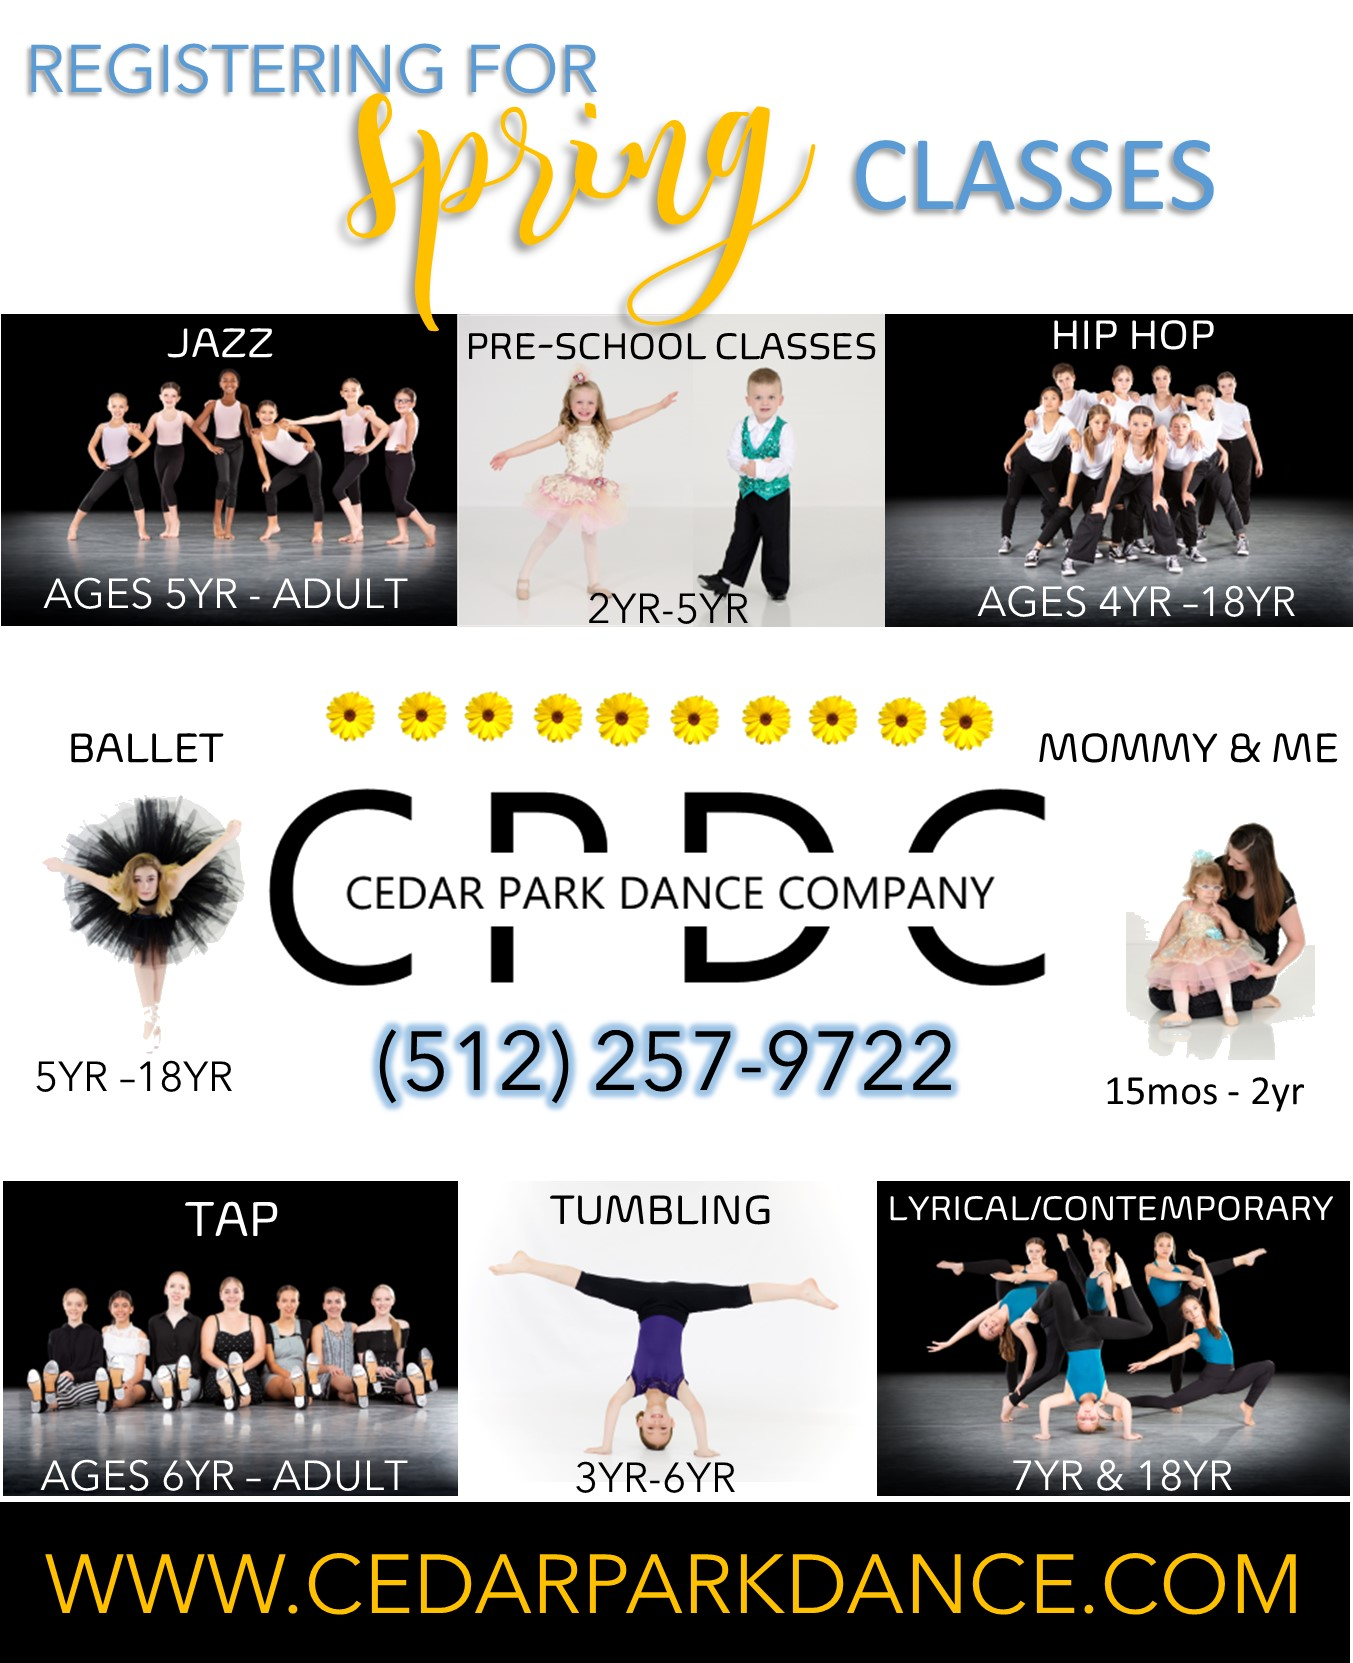 Offering classes in Ballet, Tap, Clogging, Jazz, Contemporary, and Lyrical for all ages!